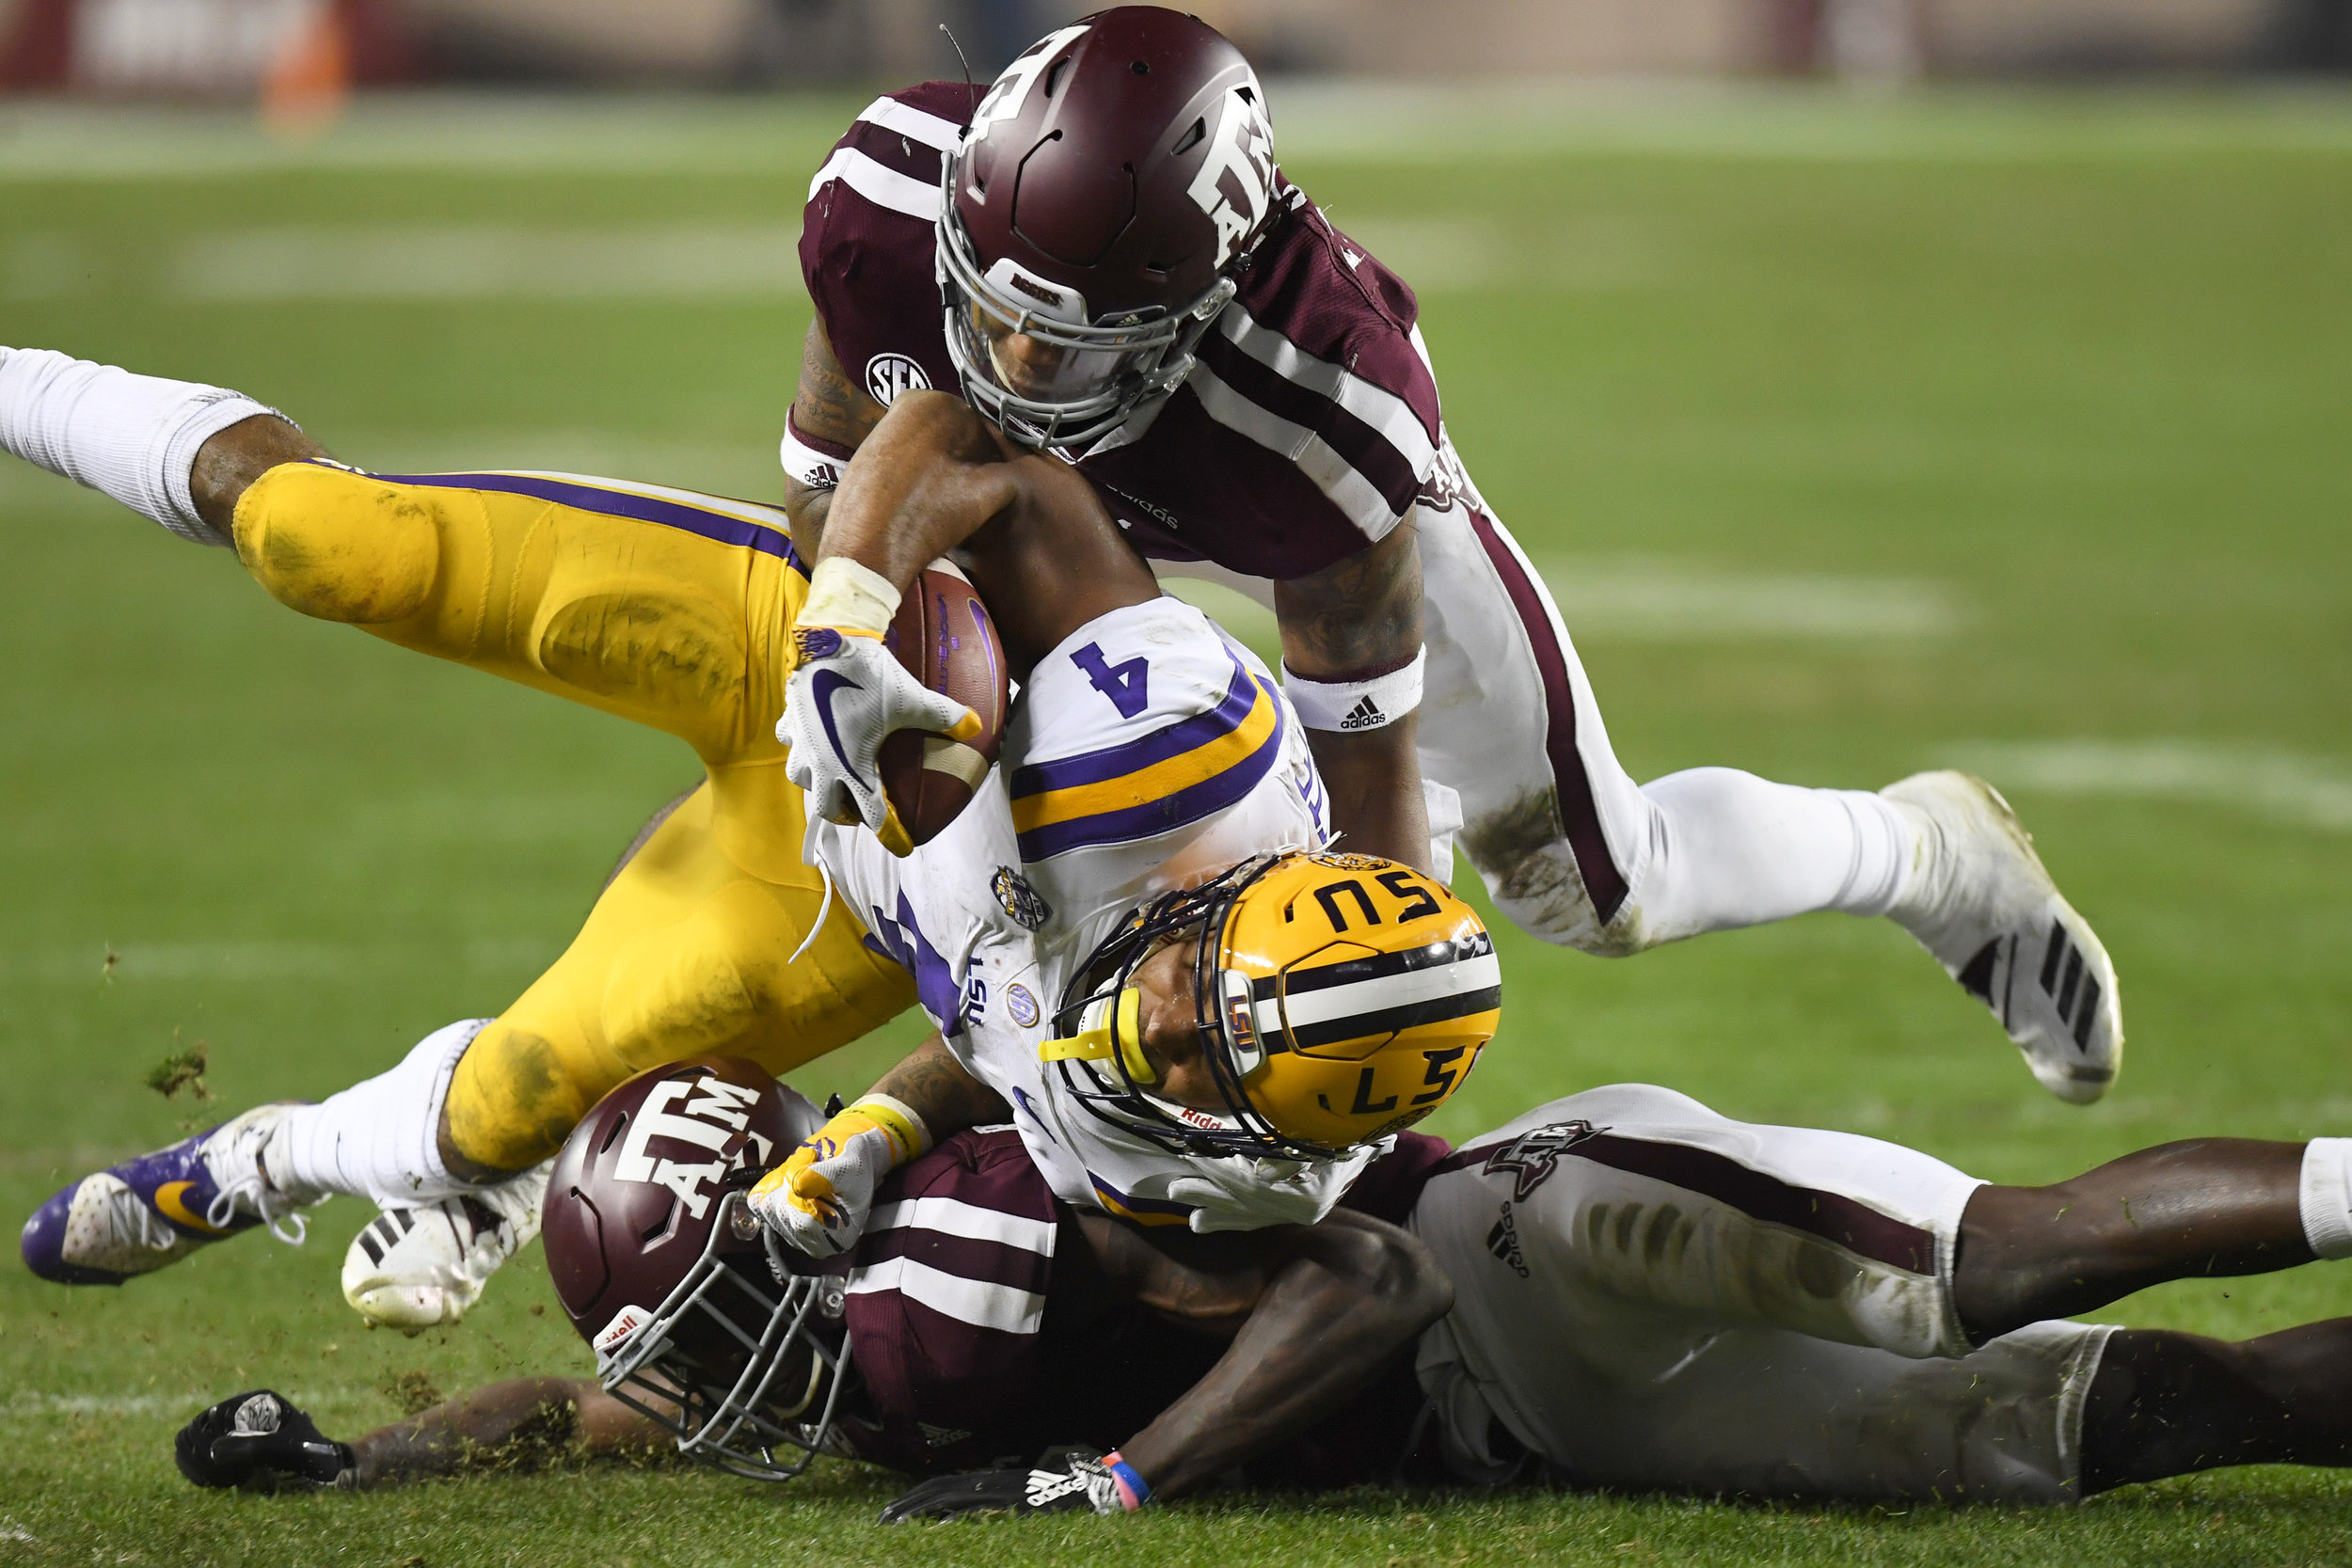 Texas A&M's Larry Pryor (11) and Debione Renfro (29) stop LSU's Nick Brossette (4) in the third quarter Saturday, Nov. 24, 2018, in College Station, Texas. (Laura McKenzie/The Eagle)